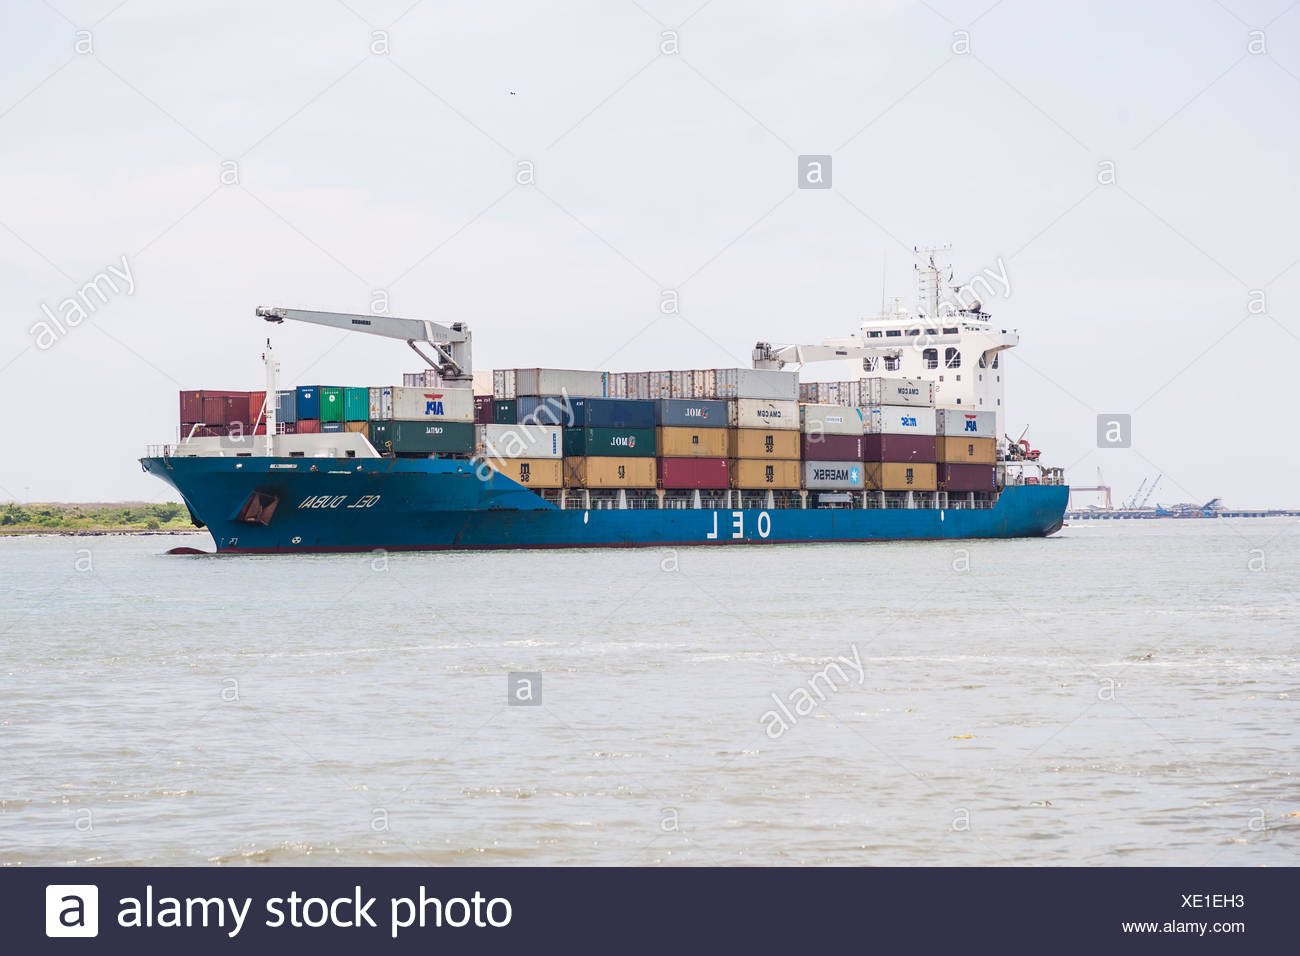 Container Ship Stock Photos & Container Ship Stock Images - Alamy